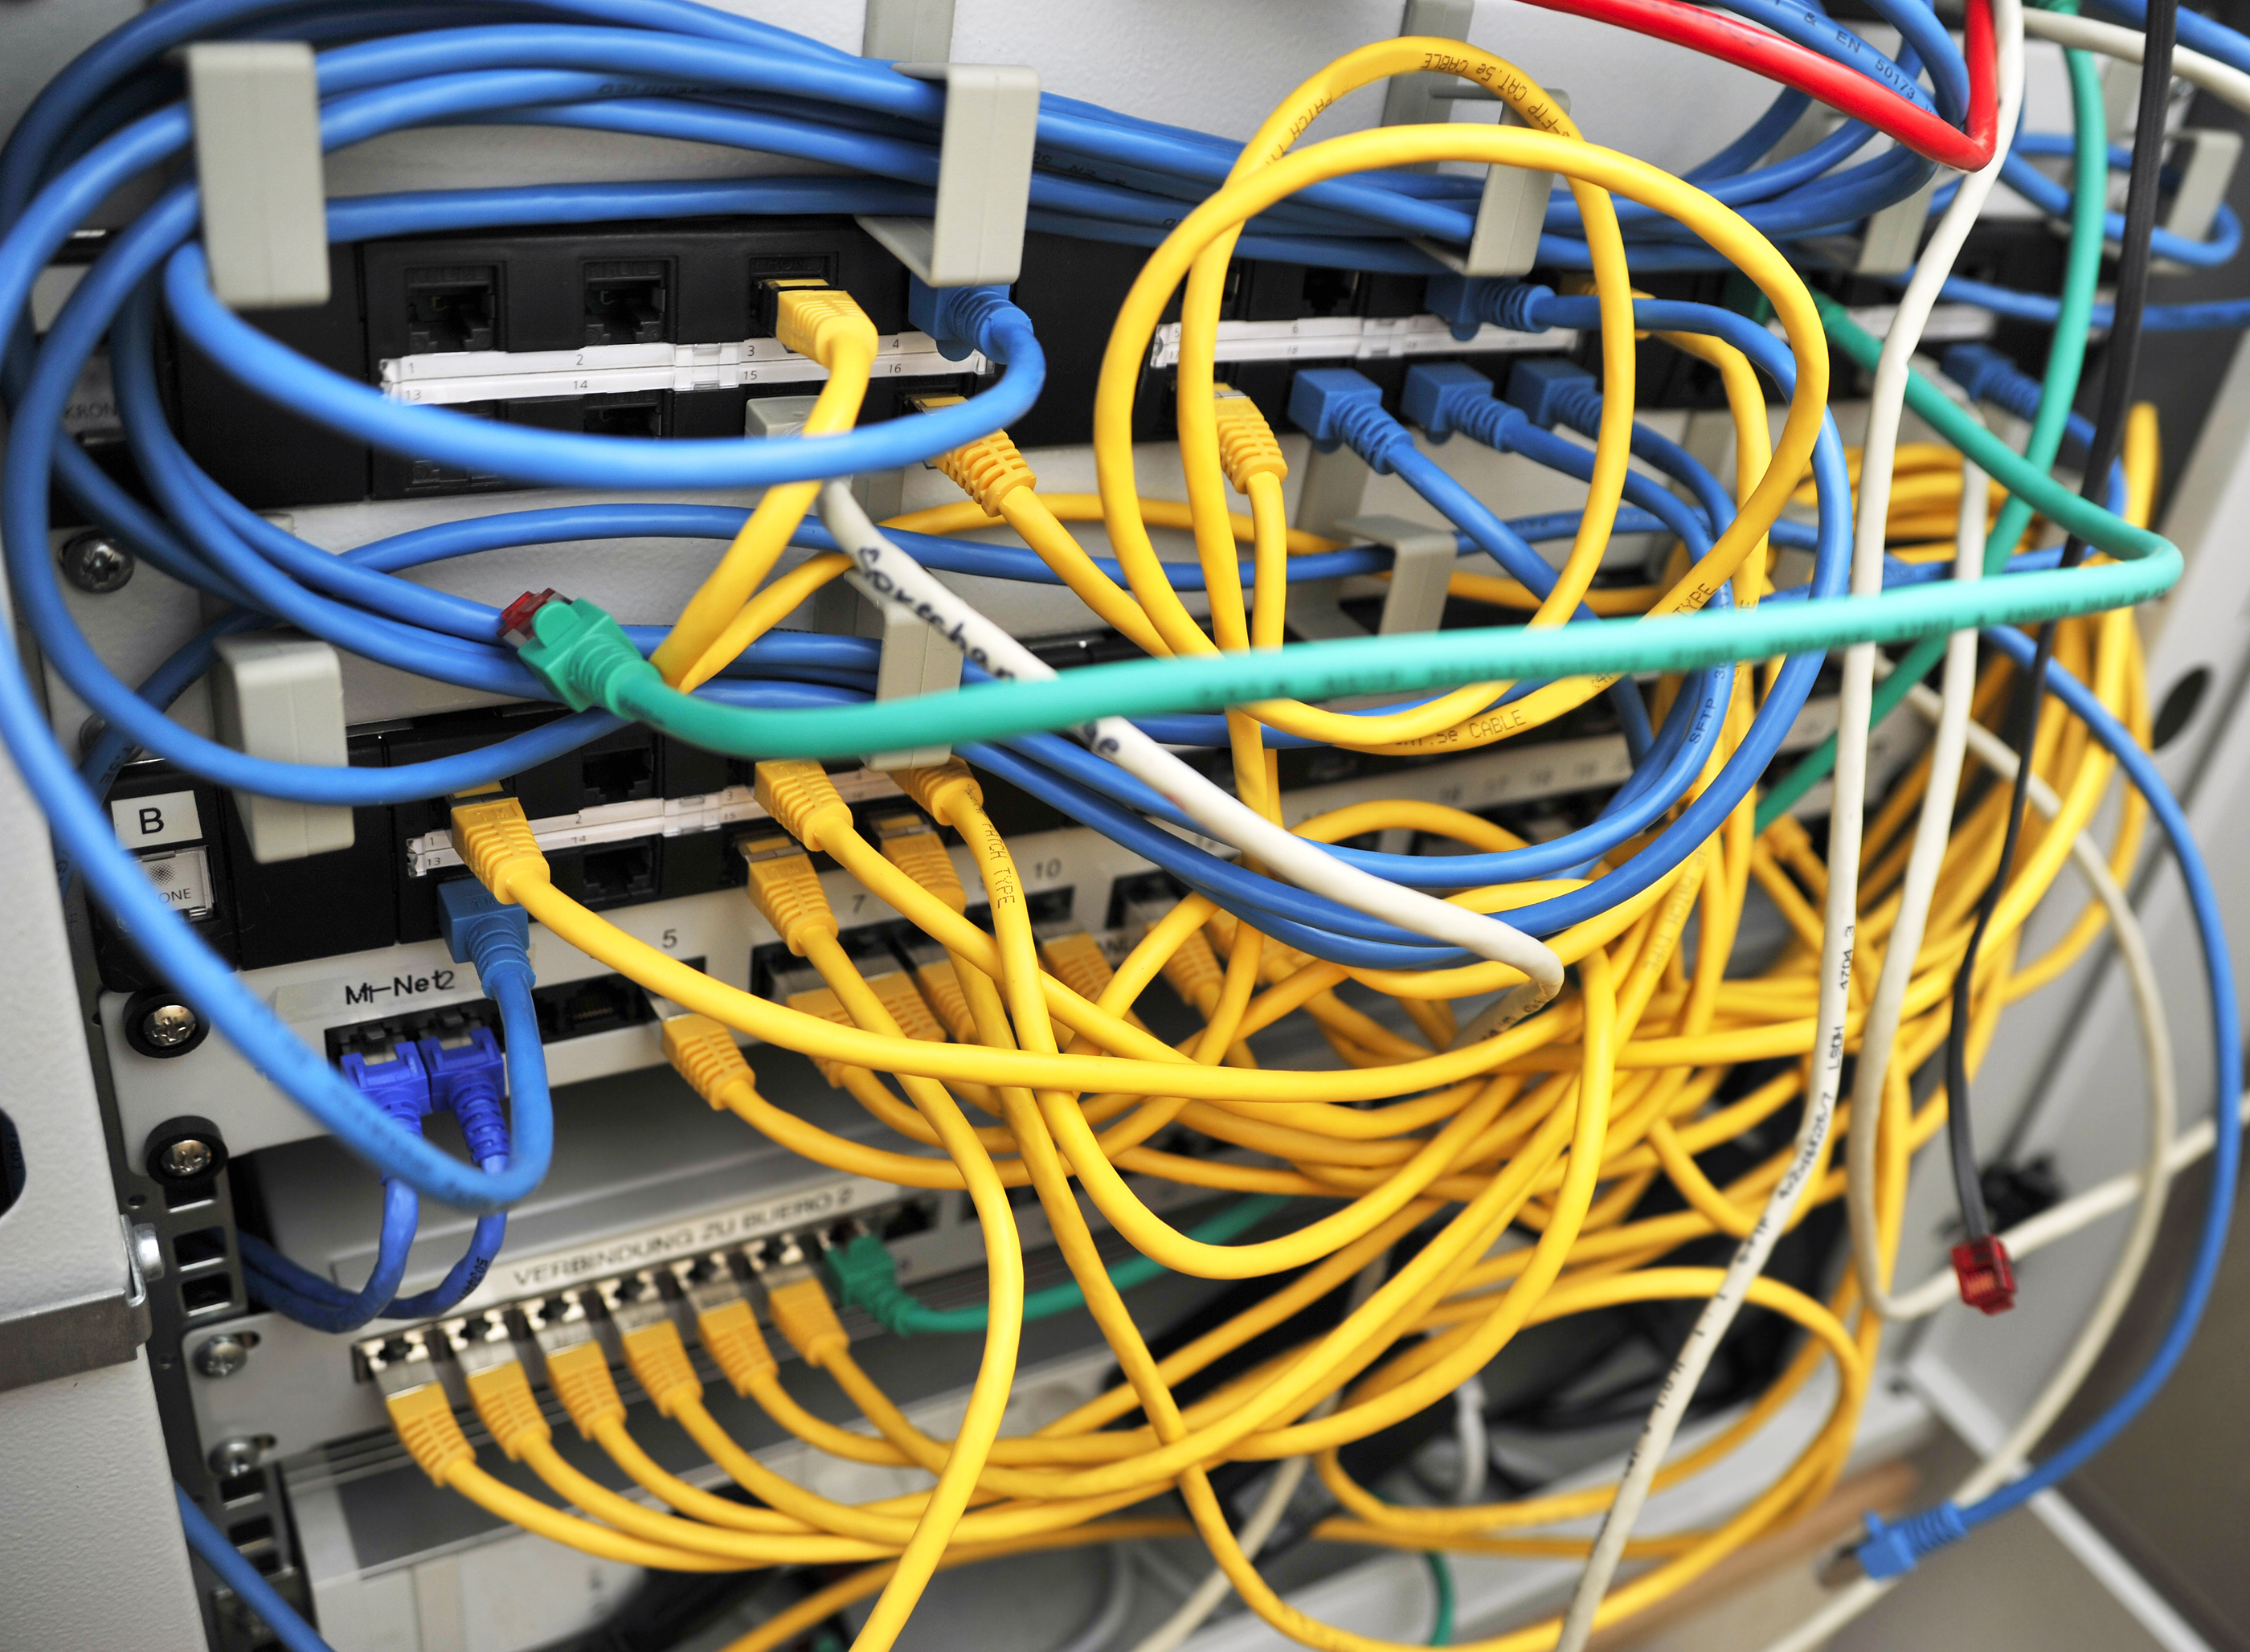 Admirable Millrose Telecom Launches Data Cabinet Tidy Service Millrose Telecom Wiring 101 Mecadwellnesstrialsorg